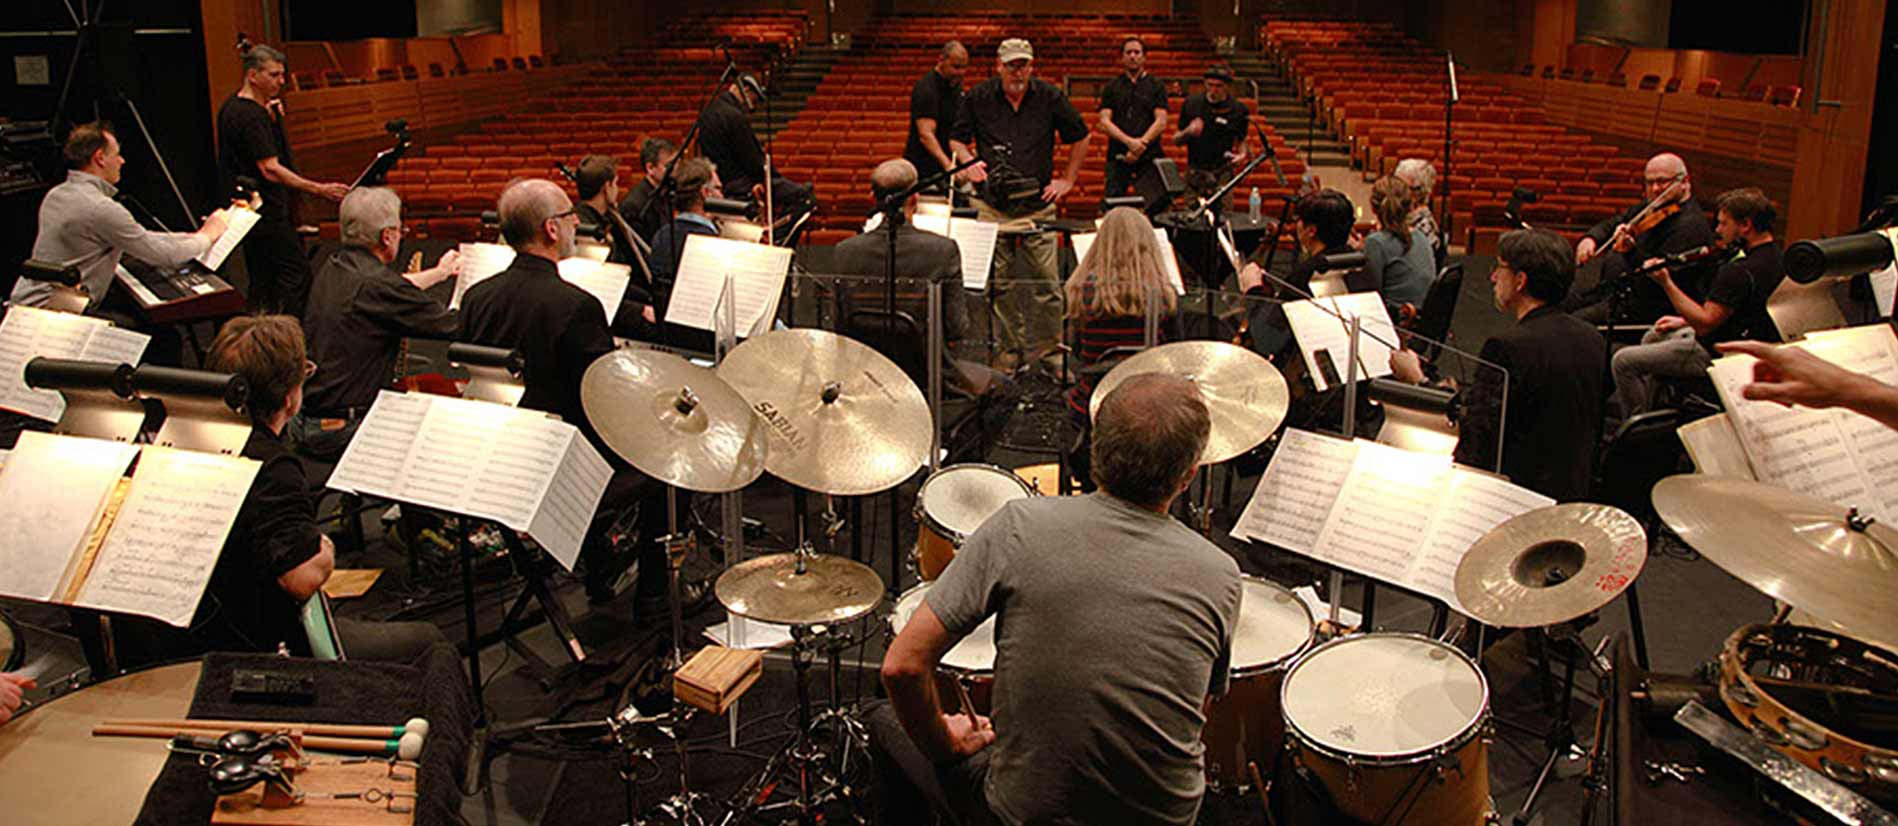 Burlington New Millennium Orchestra with conductor Charles Cozens rehearse at the Burlington Performing Arts Centre